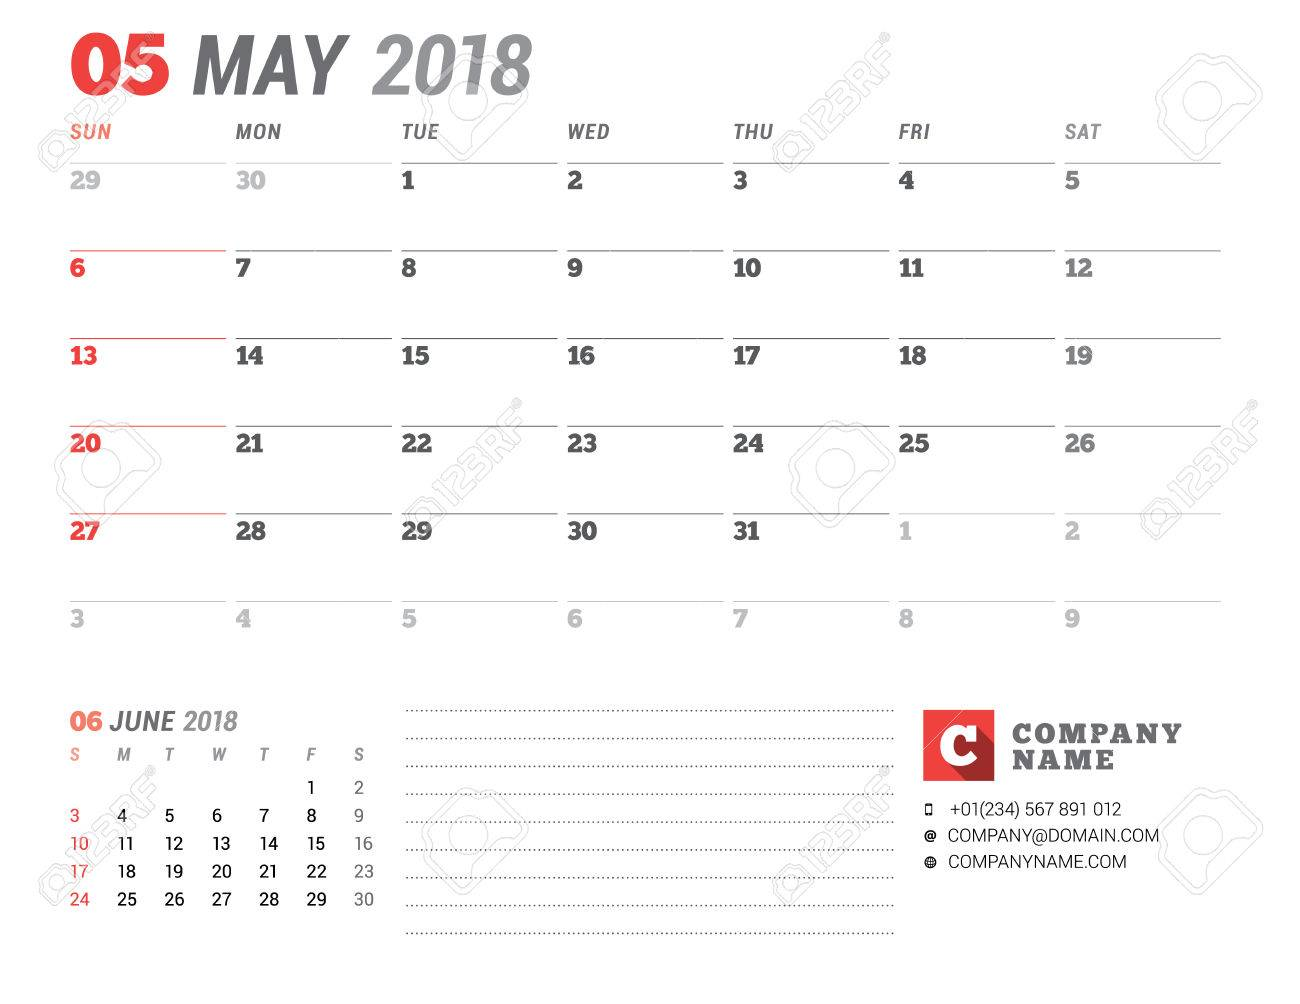 Calendar template for 2018 year may business planner template calendar template for 2018 year may business planner template stationery design week accmission Gallery